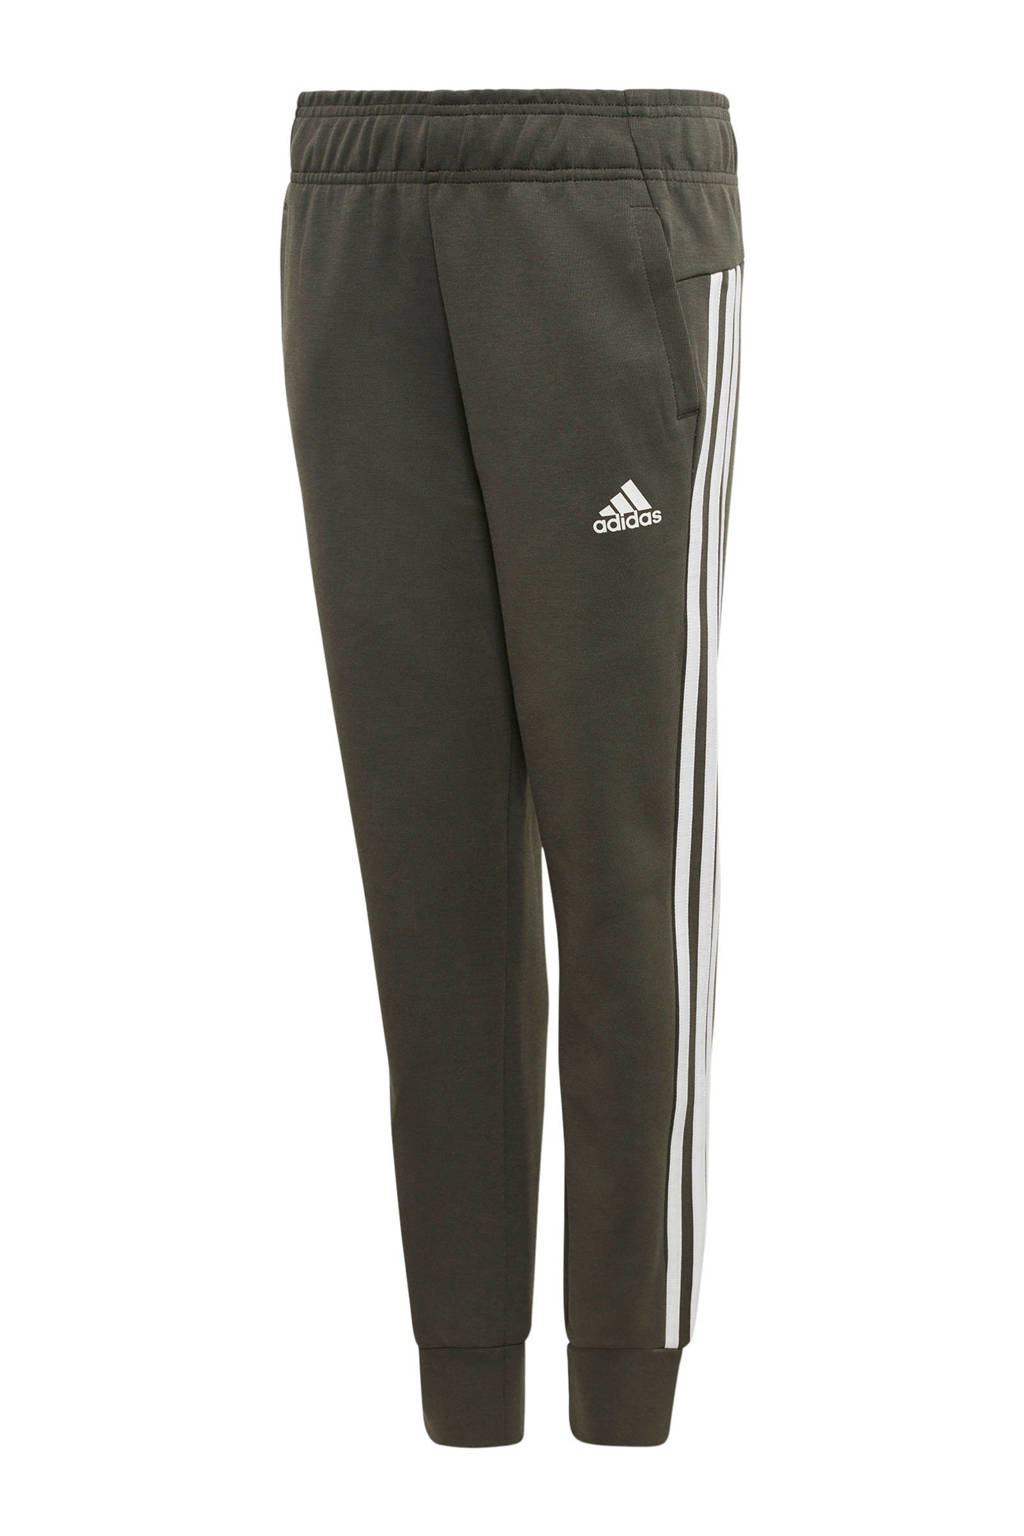 adidas performance joggingbroek antraciet, Antraciet/wit